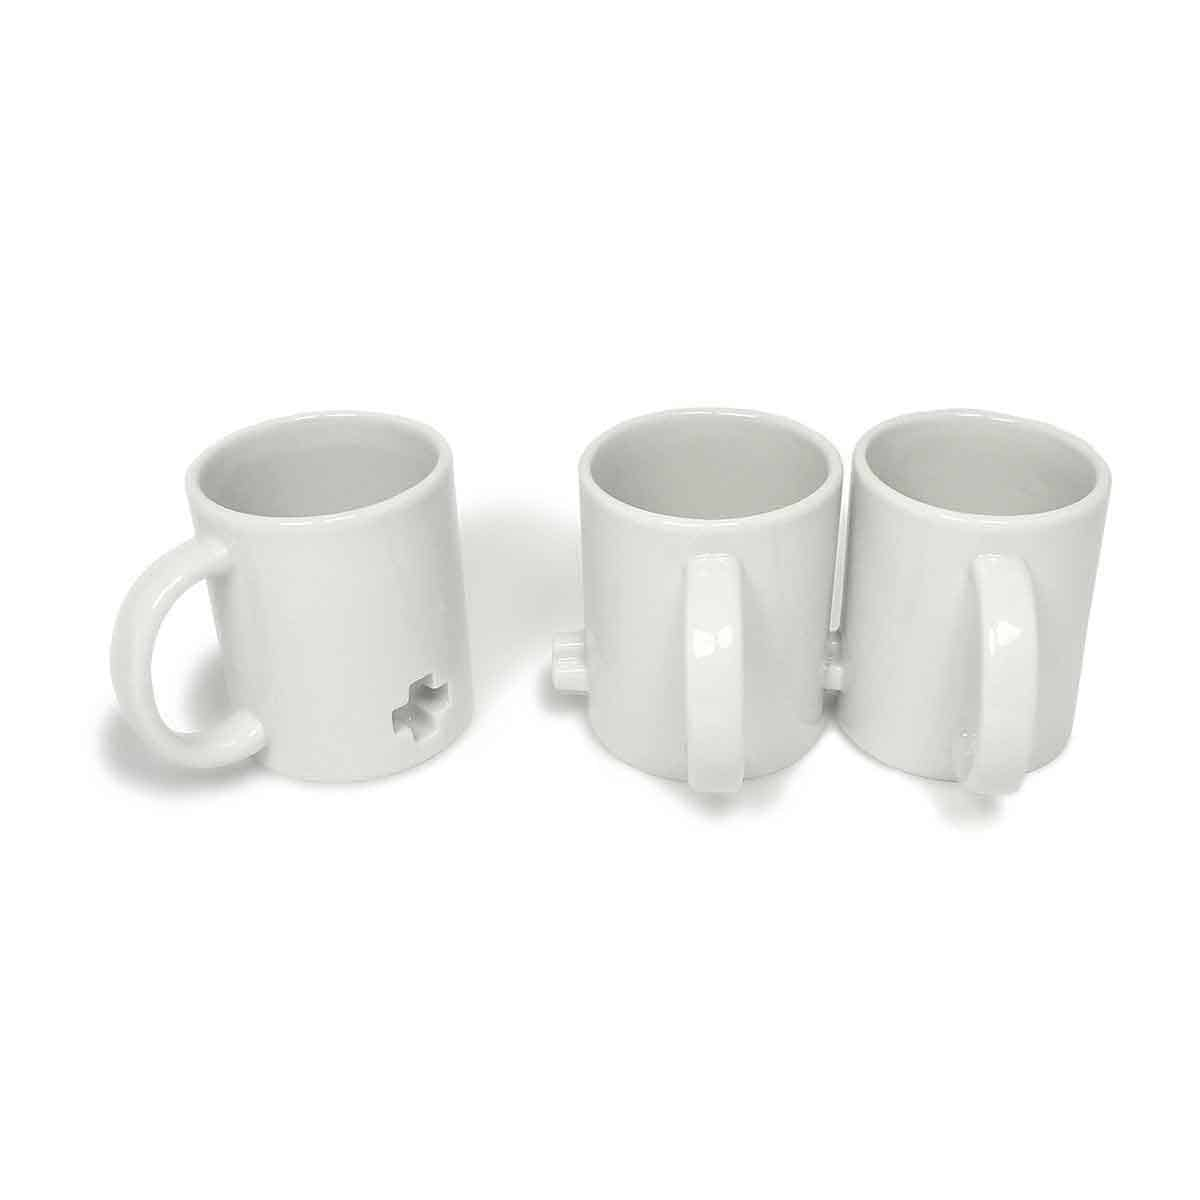 Thelermont Hupton Link Mugs Unique Product